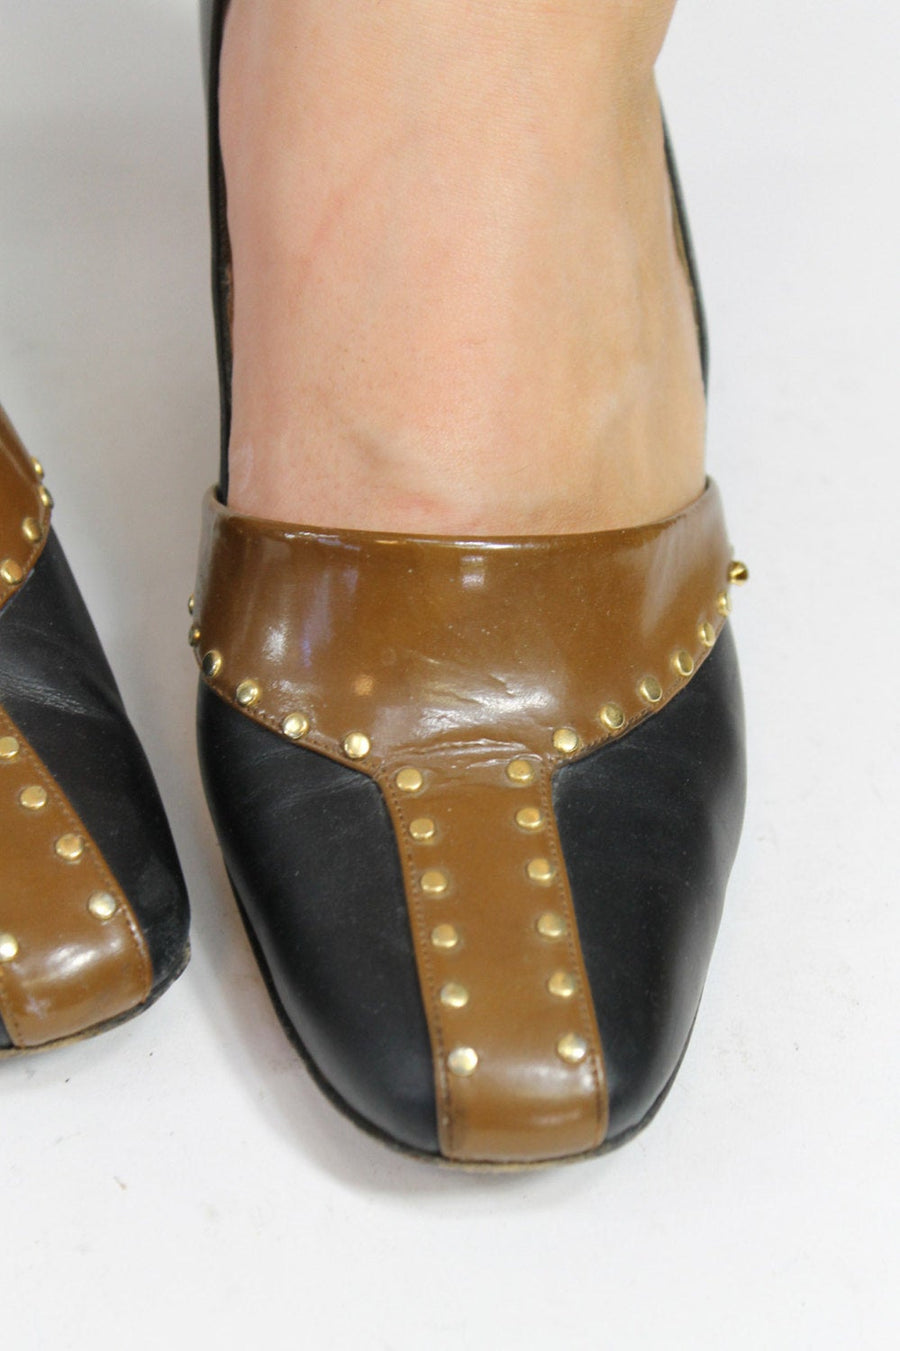 1960s studded shoes size 6 us | vintage Julianelli mod pumps | new in